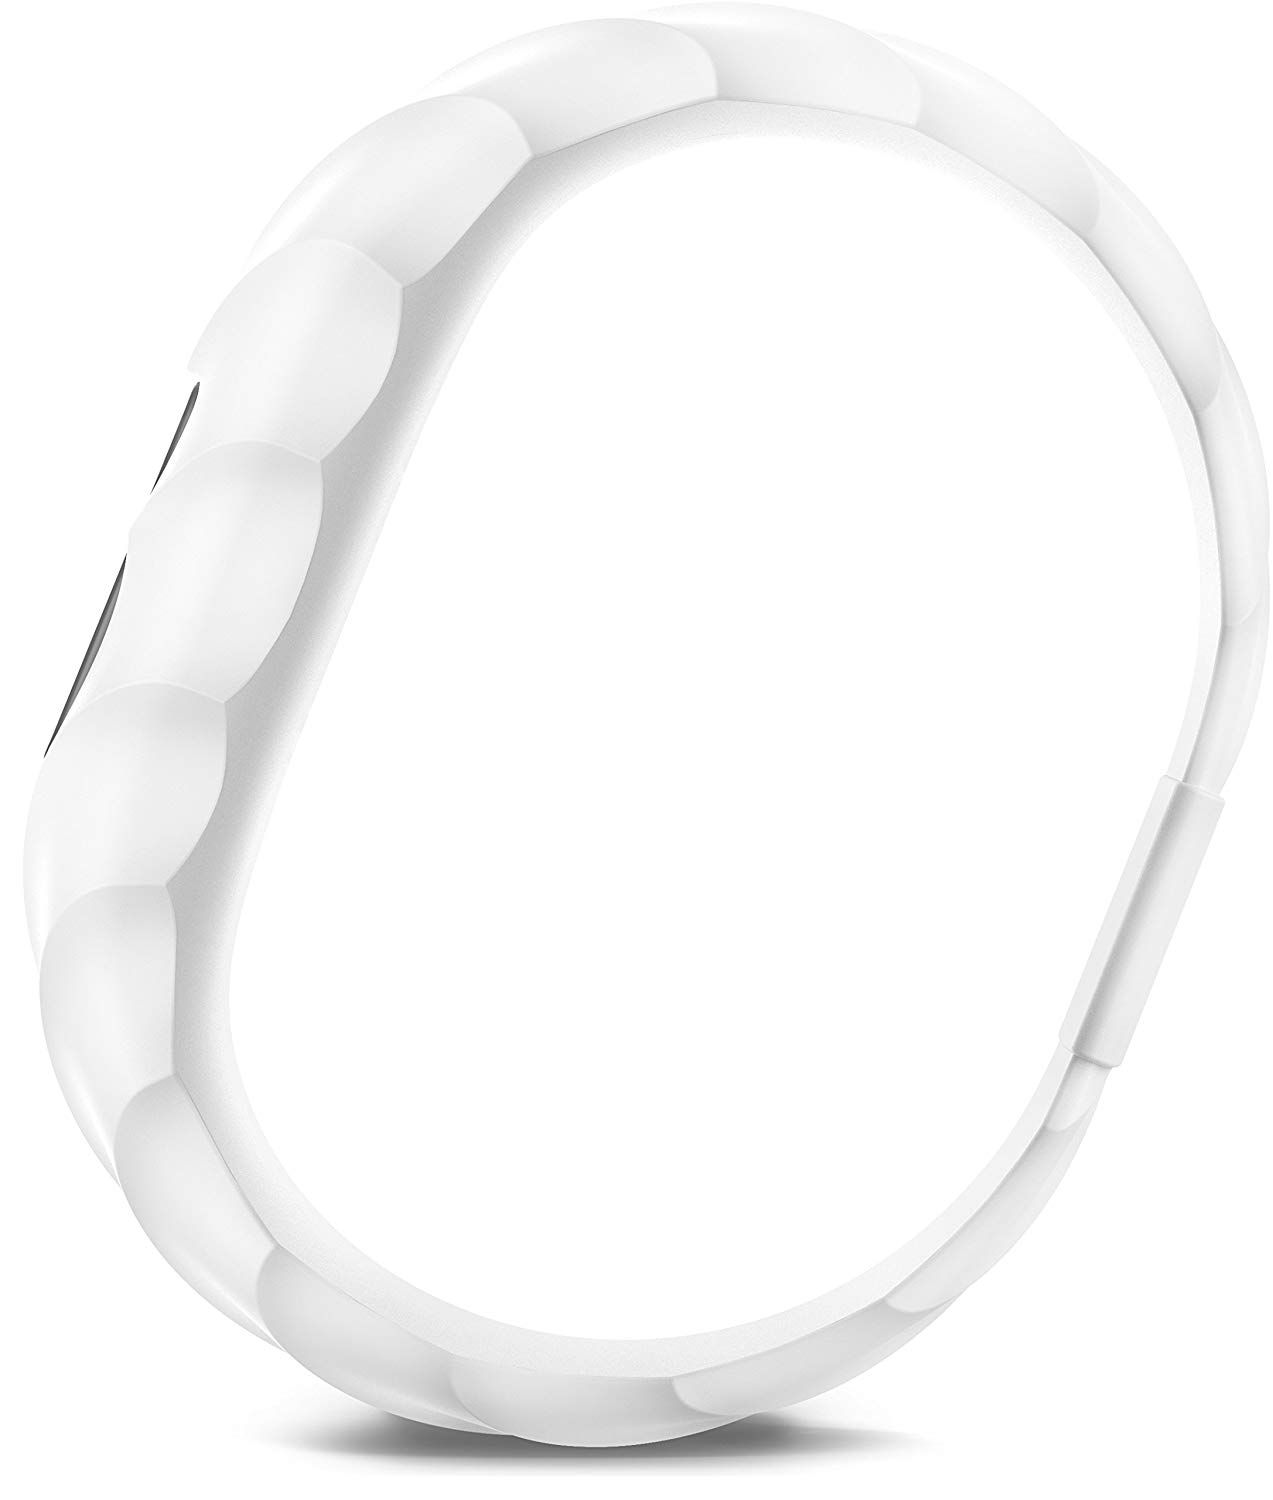 Pulsera garming vivofit 3 blanca - chollo amazon